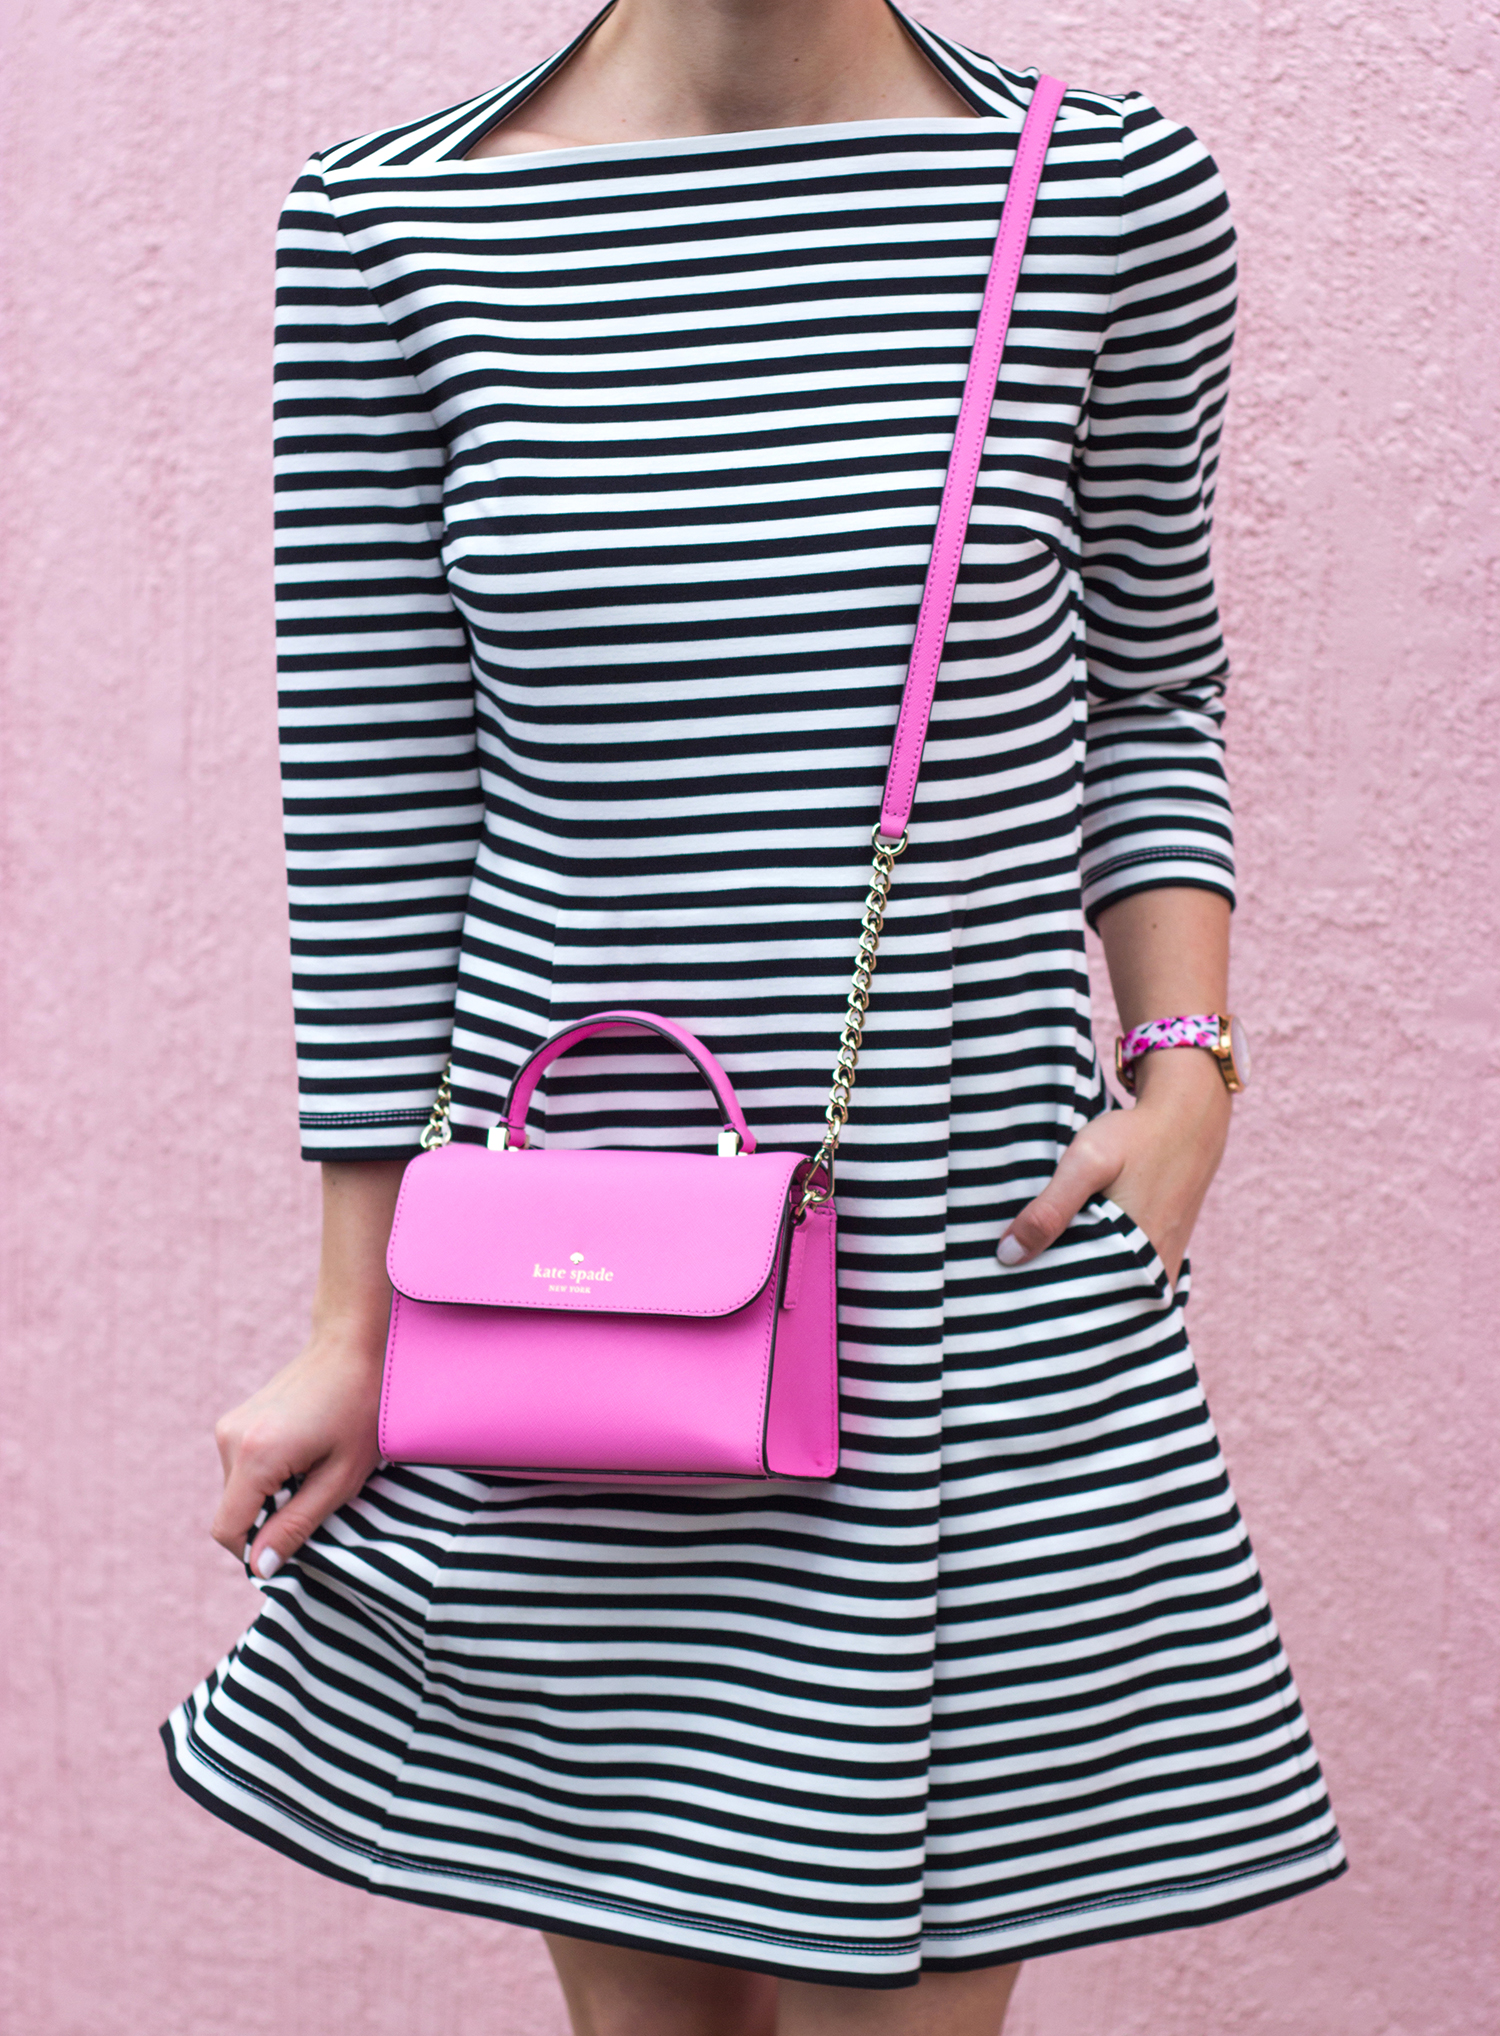 livvyland-blog-olivia-watson-austin-texas-fashion-blogger-kate-spade-broome-street-everyday-tee-white-rose-pleated-skirt-pink-black-spring-outfit-striped-everyday-dress-rouge-pink-handbag-2